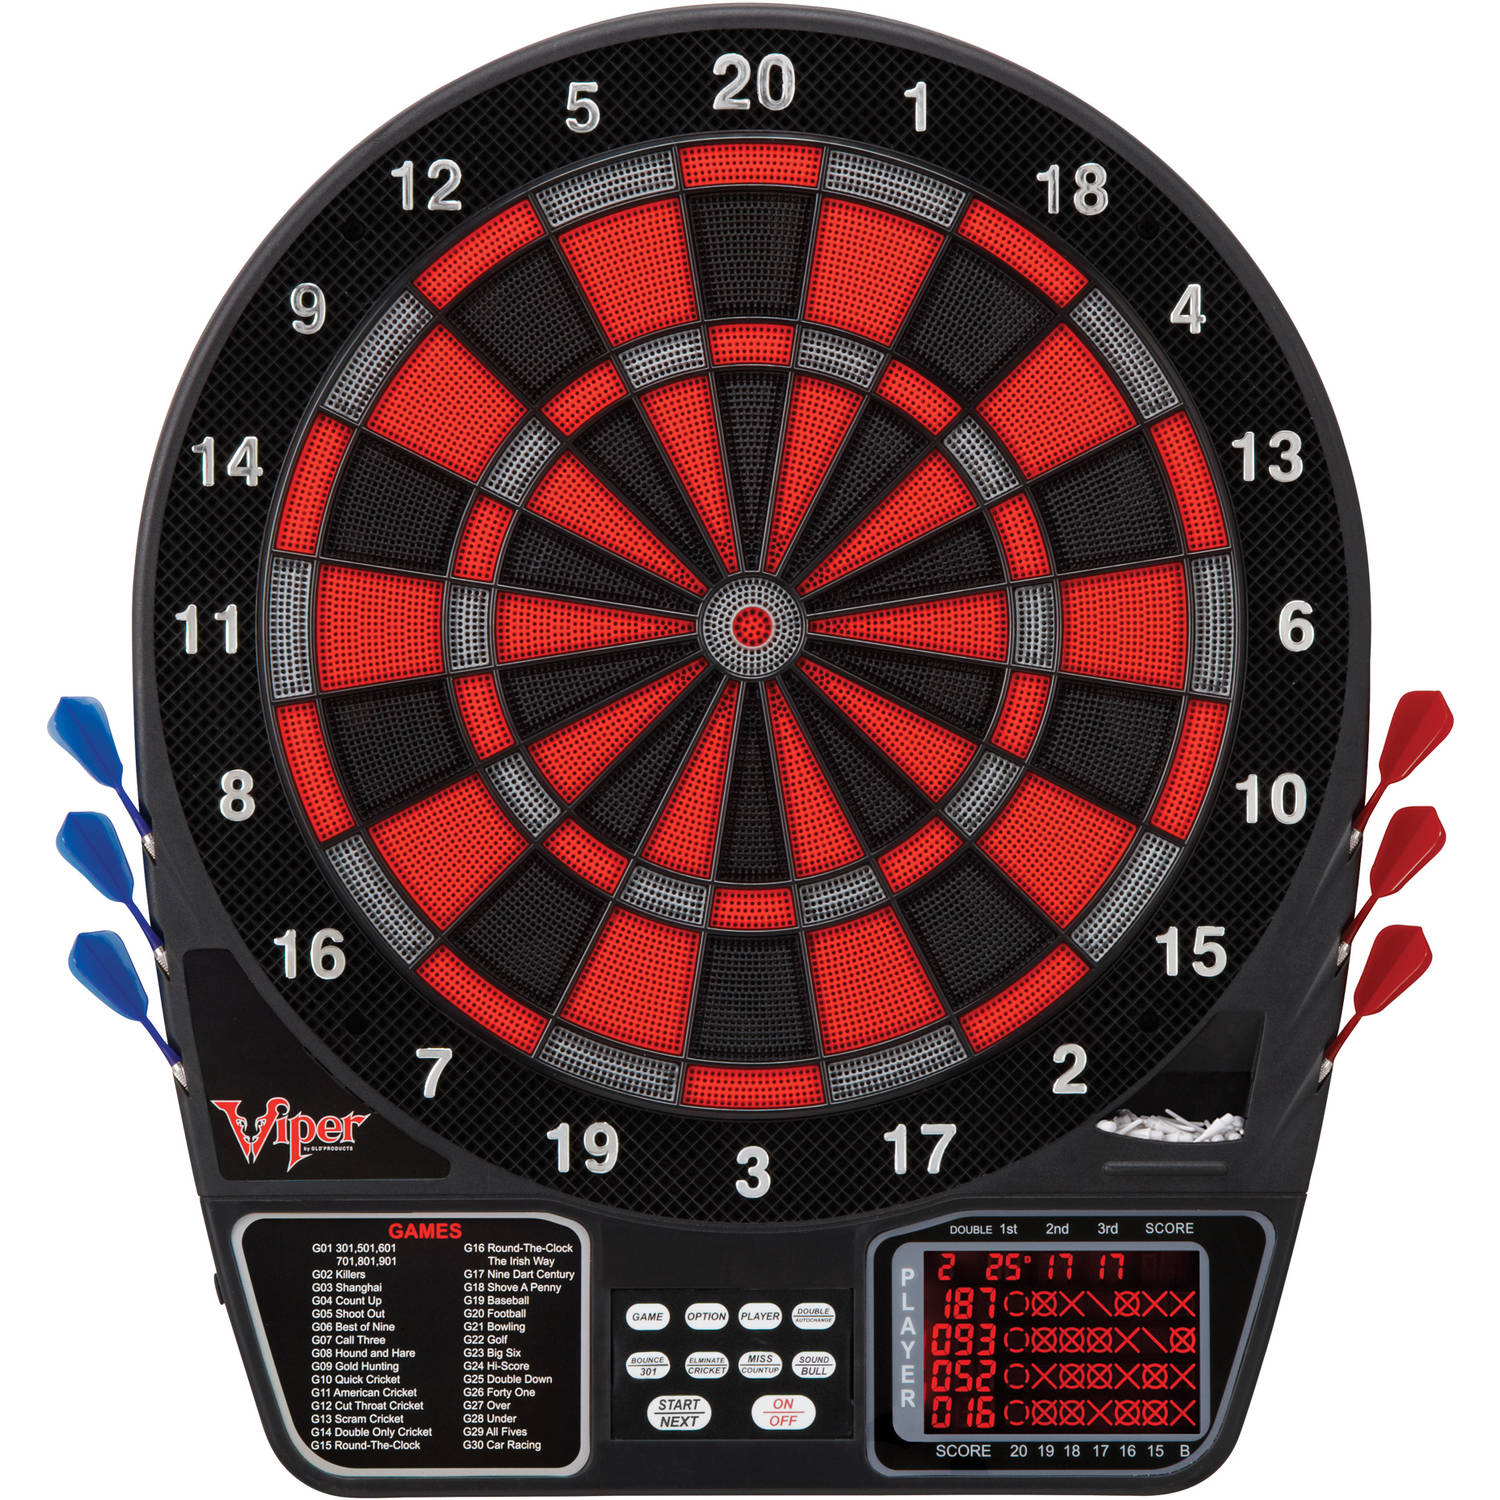 Viper 797 Electronic Dartboard by Generic